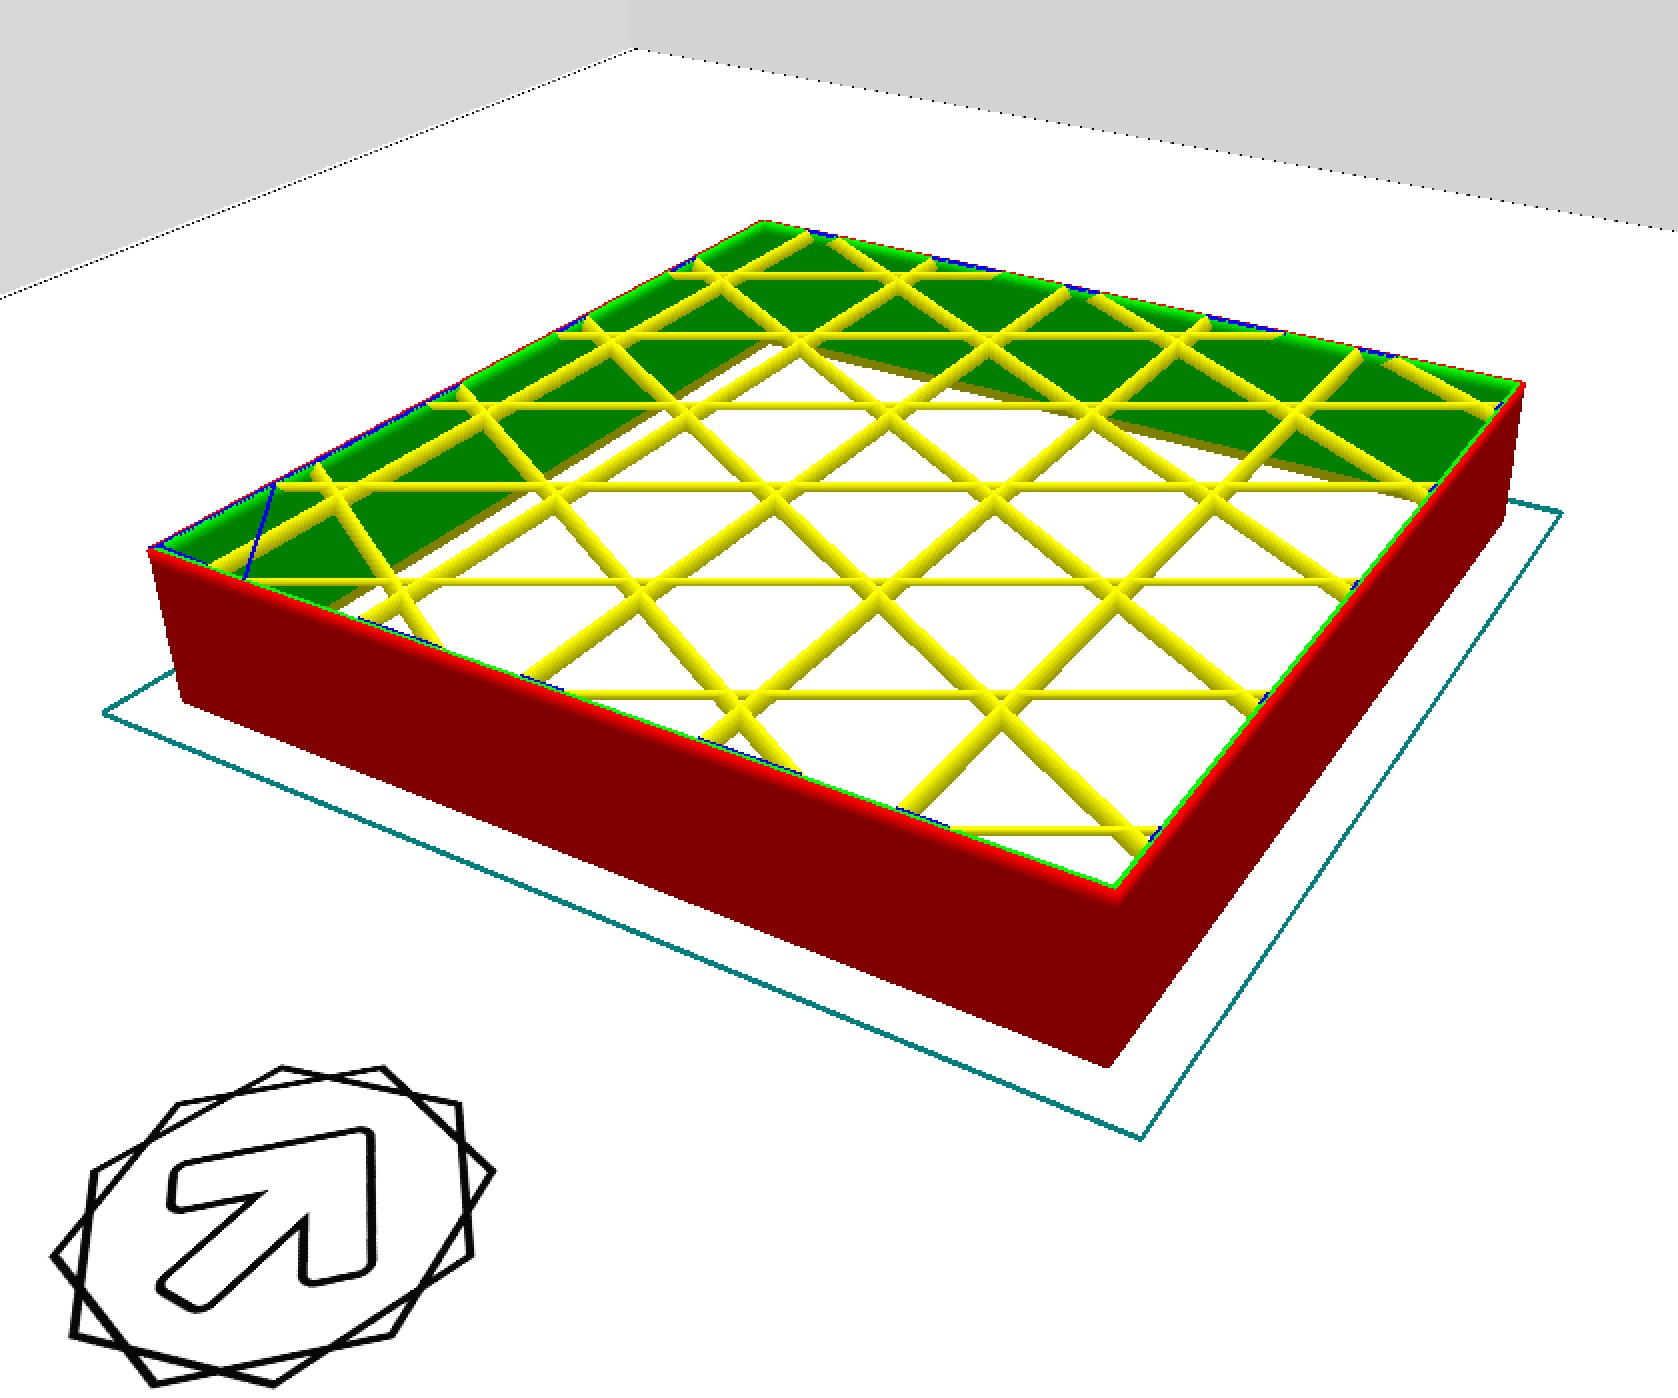 Type A Machine's CURA support generated 3D cubes